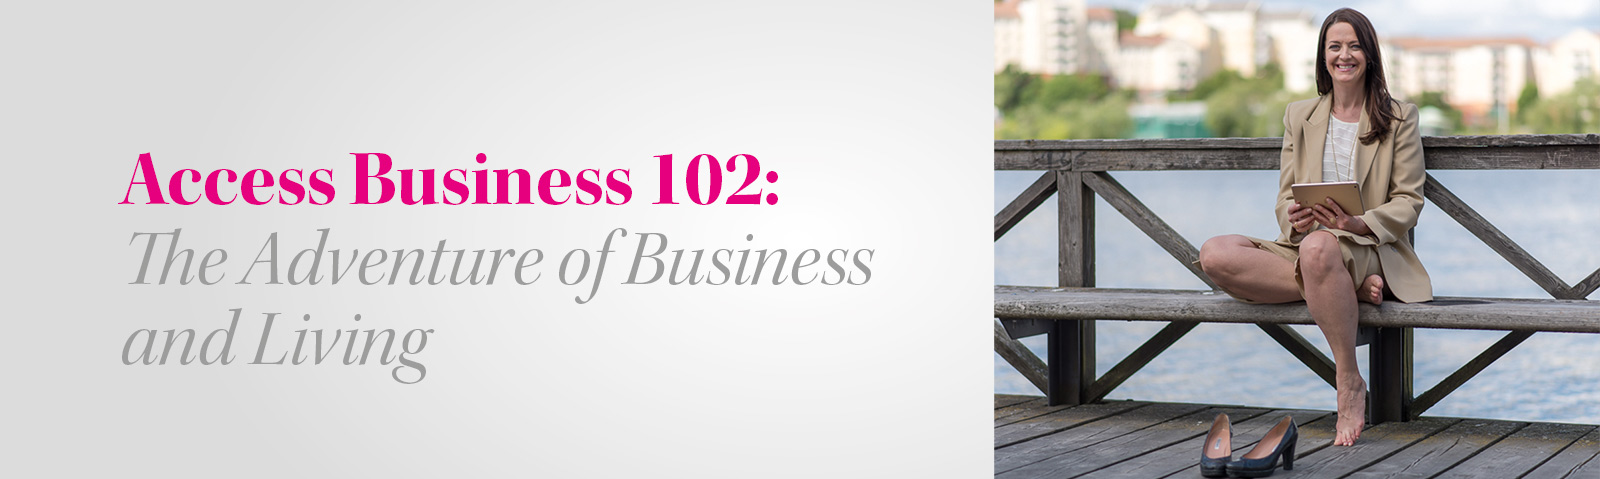 Access Business 102